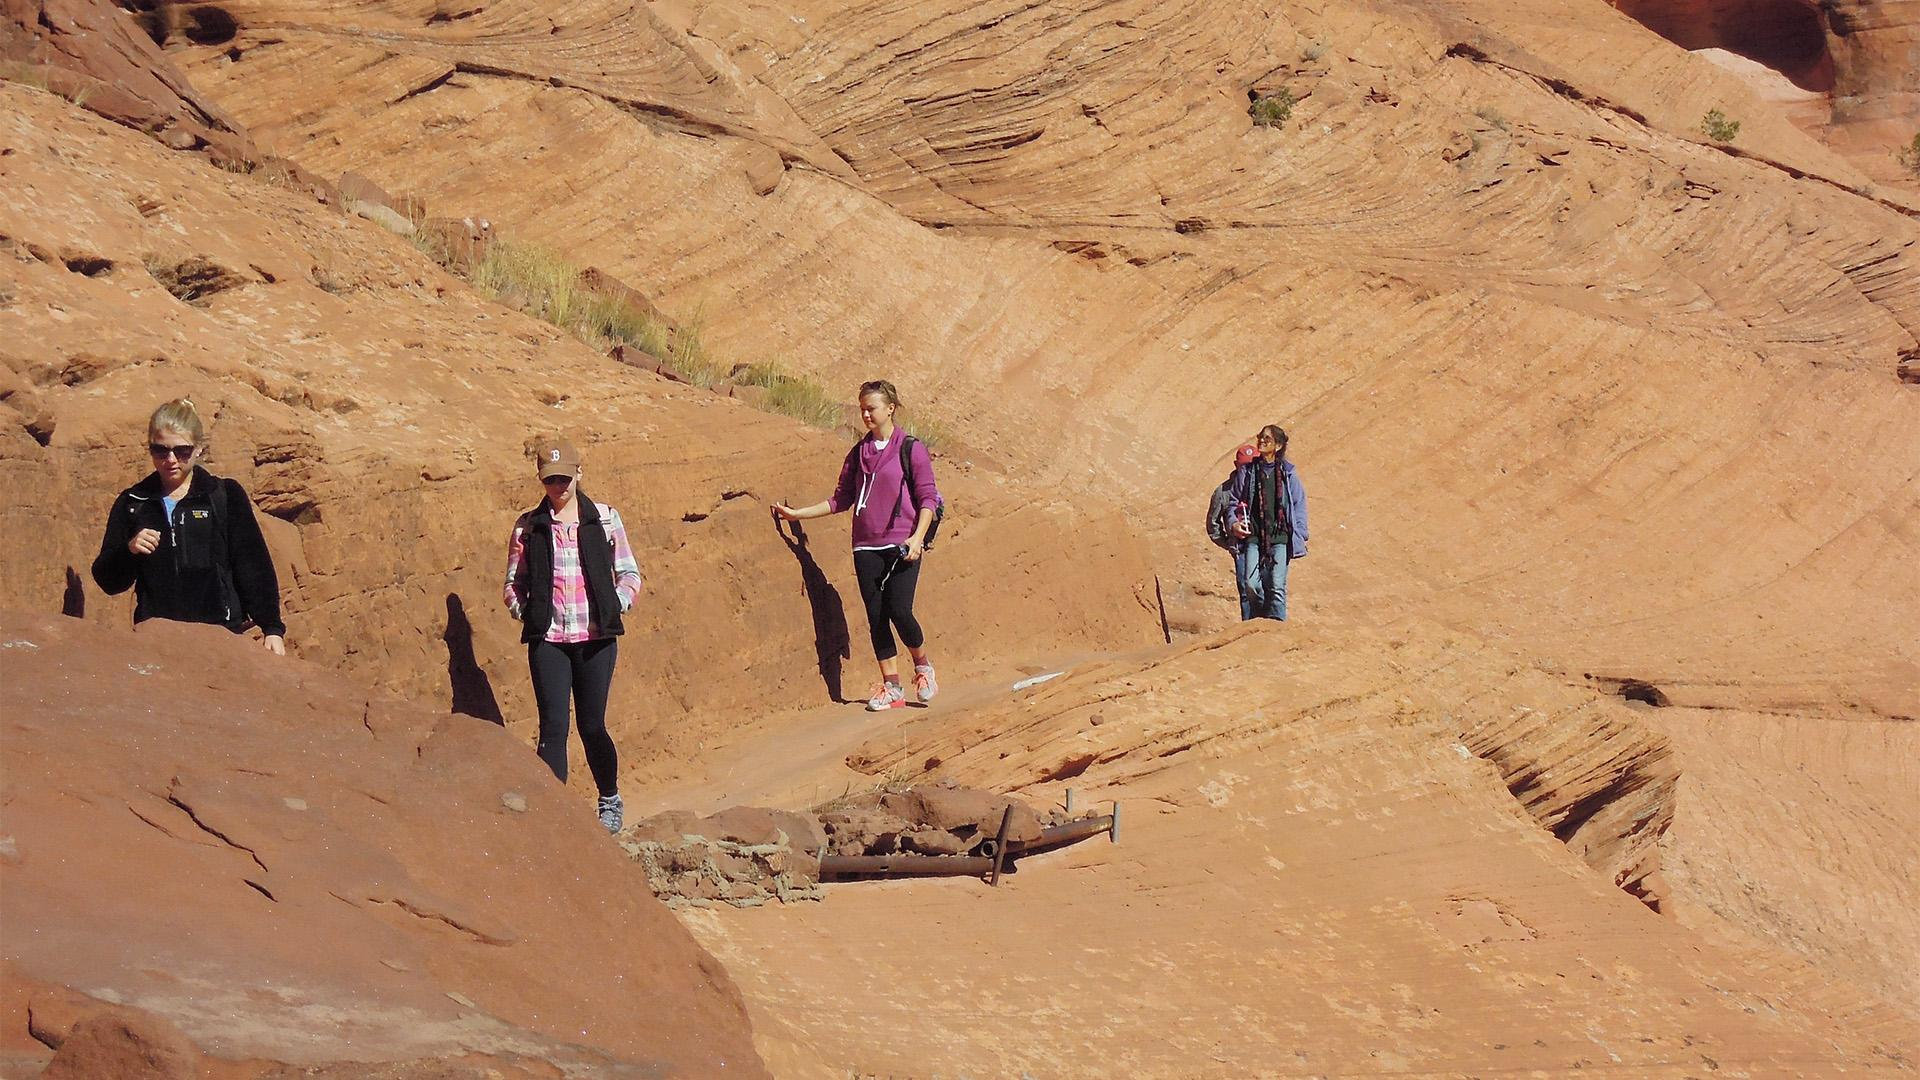 Students walk along a rock face in the western United States